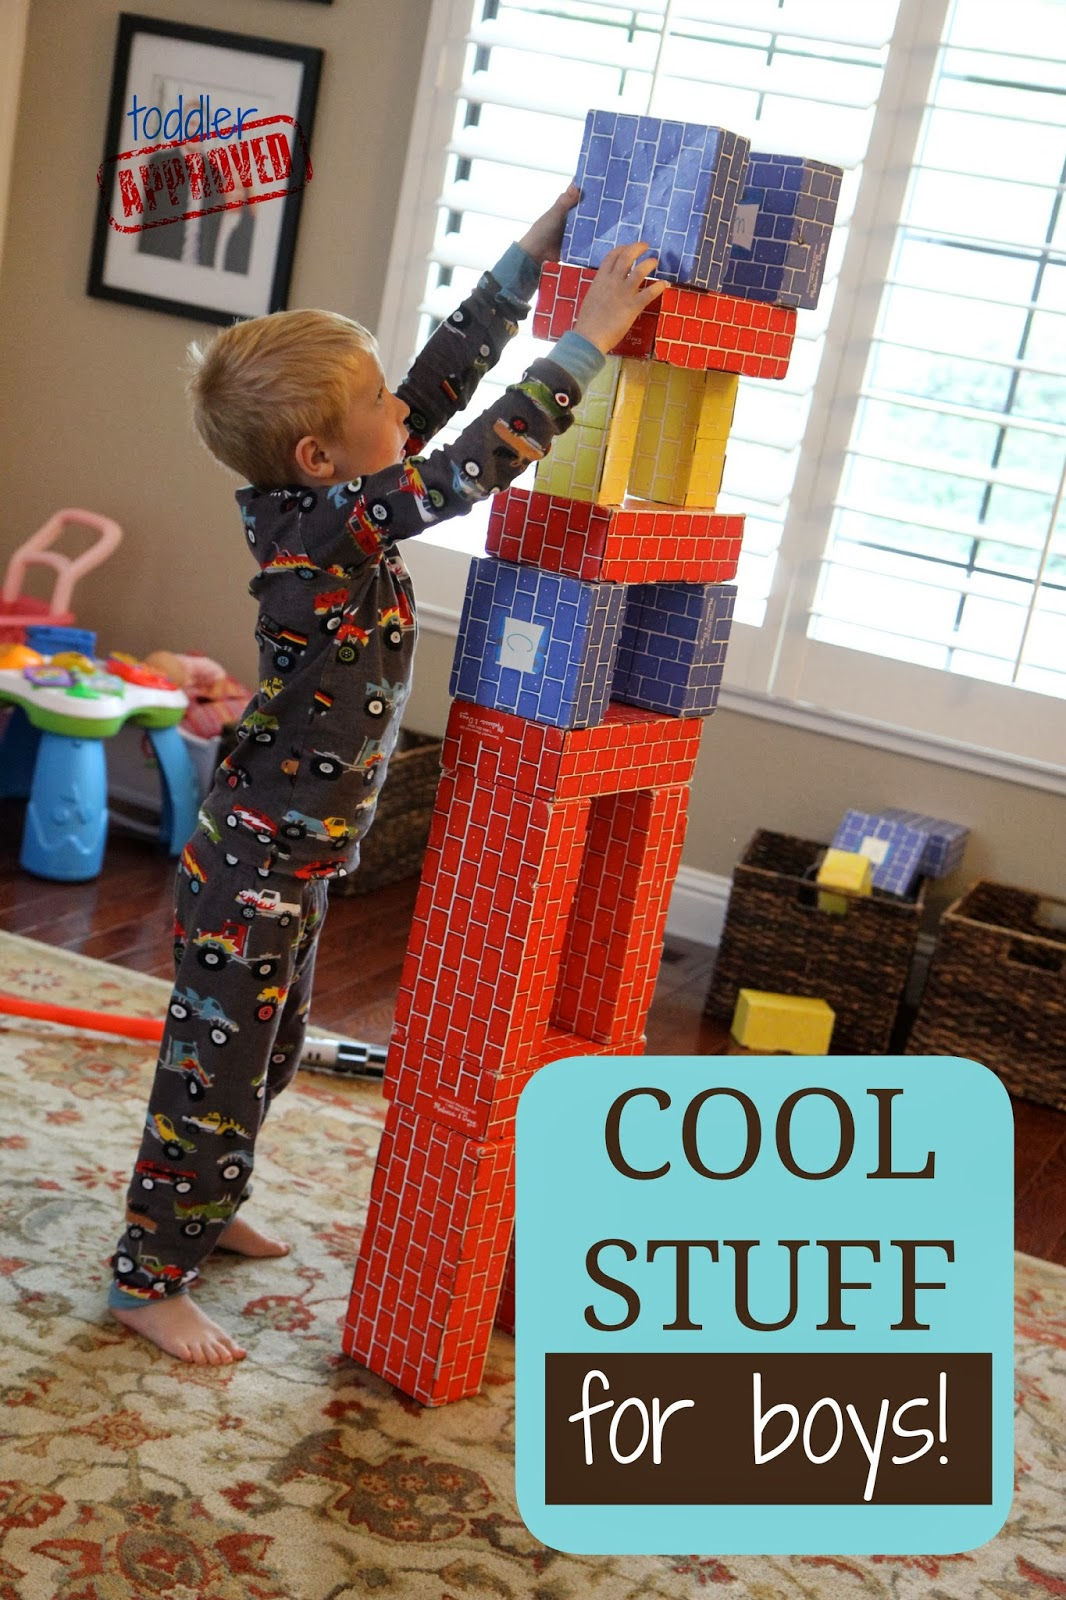 Toddler Approved!: Cool Stuff For Boys!